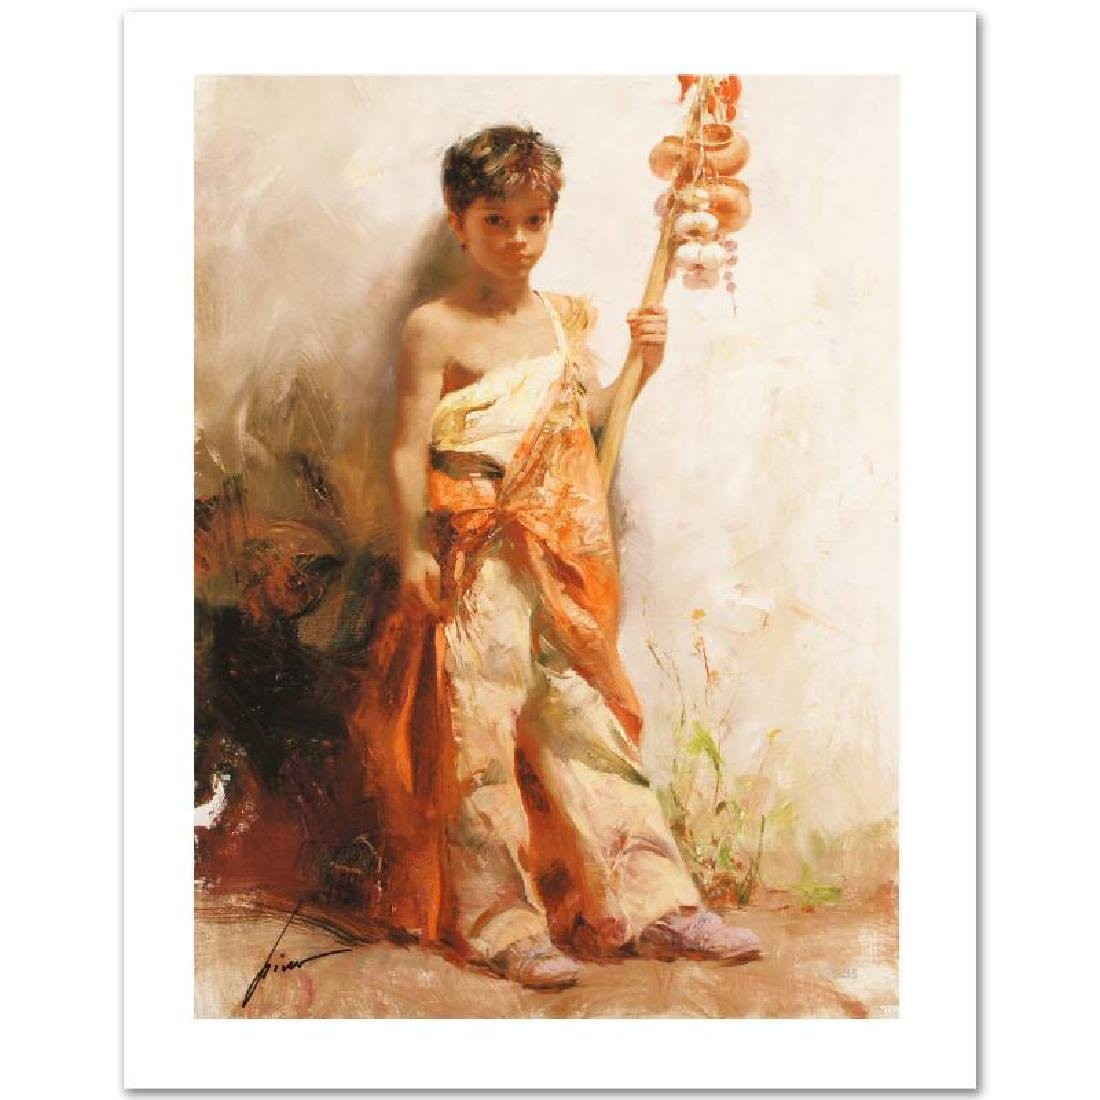 The Young Peddler by Pino (1939-2010)